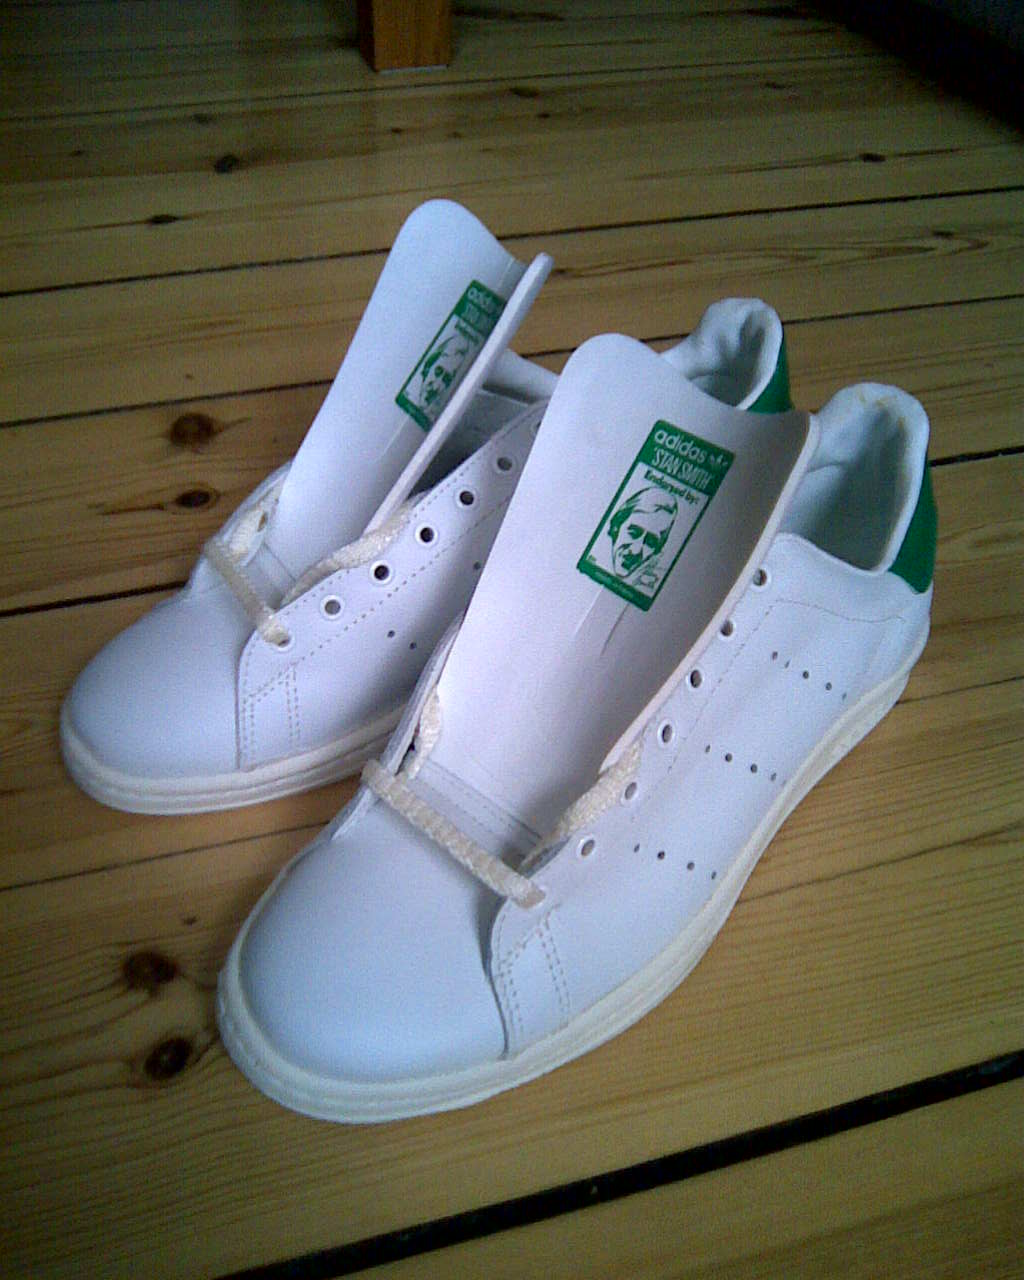 ae2d1f21f52 Adidas Stan Smith - Wikipedia